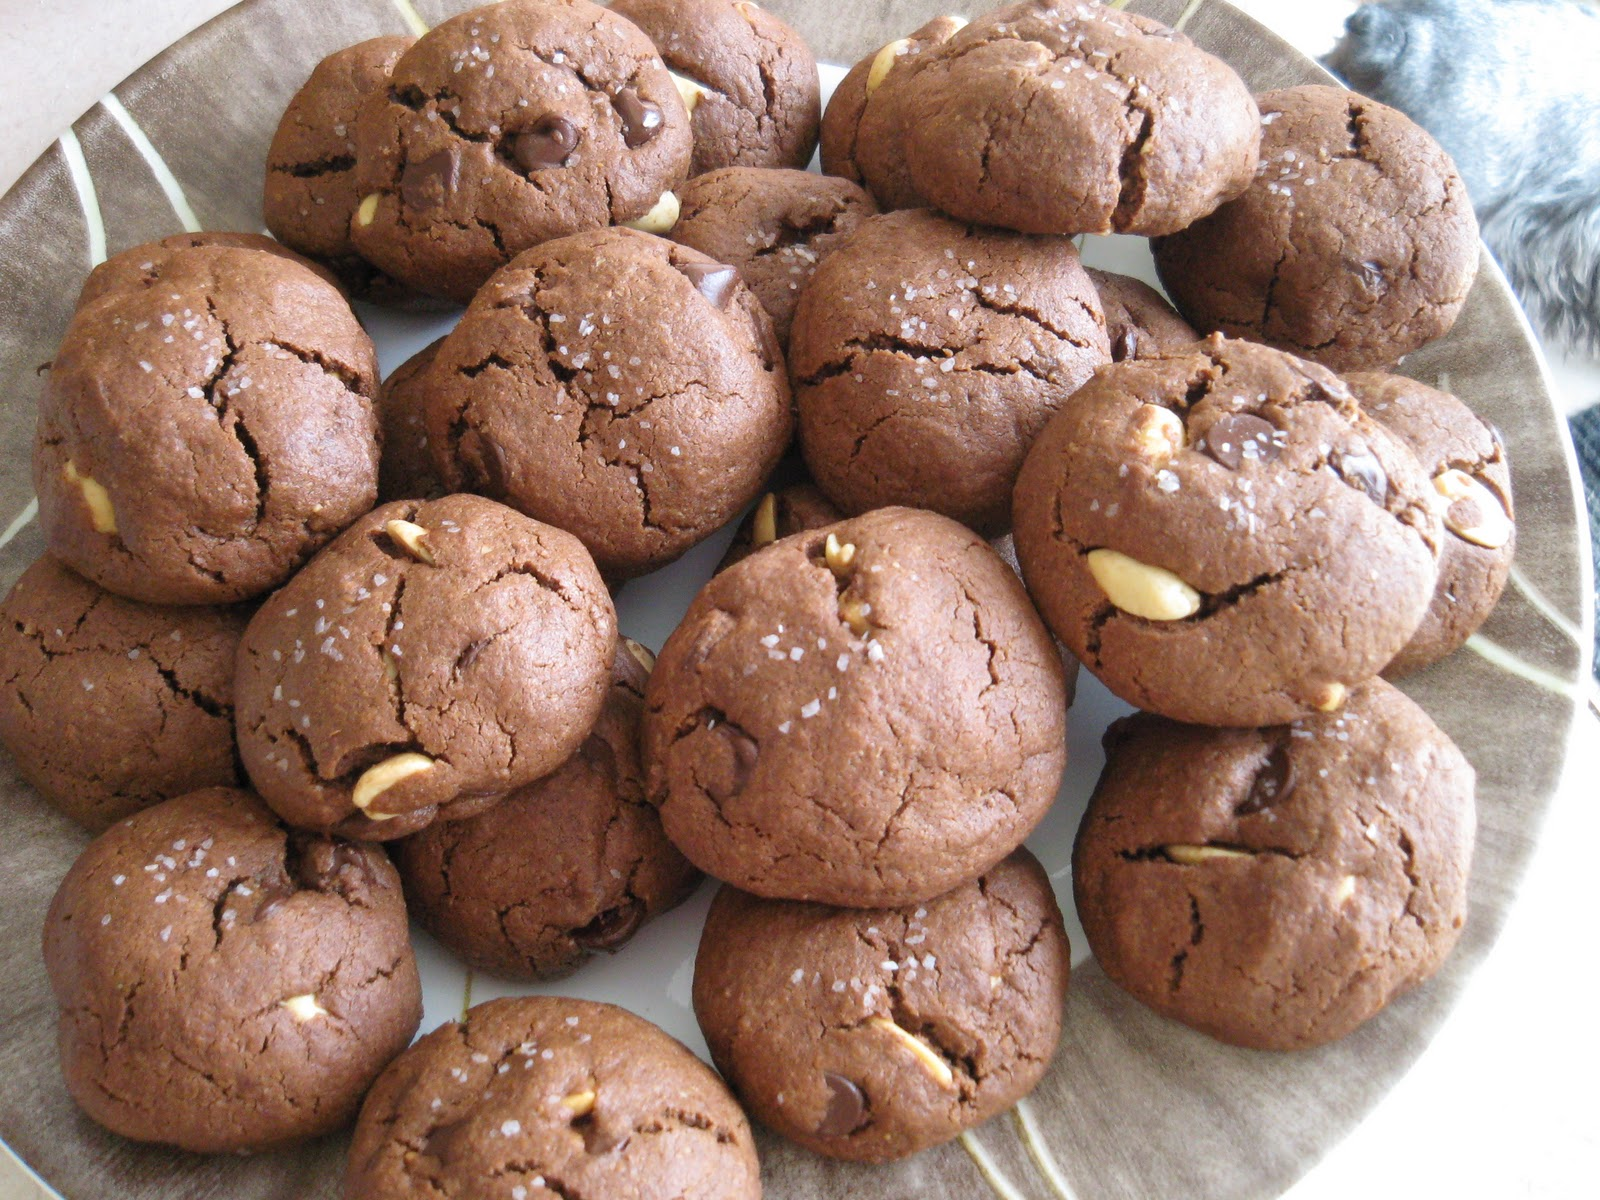 Happy Insides: Salted Double Chocolate Peanut Butter Cookies